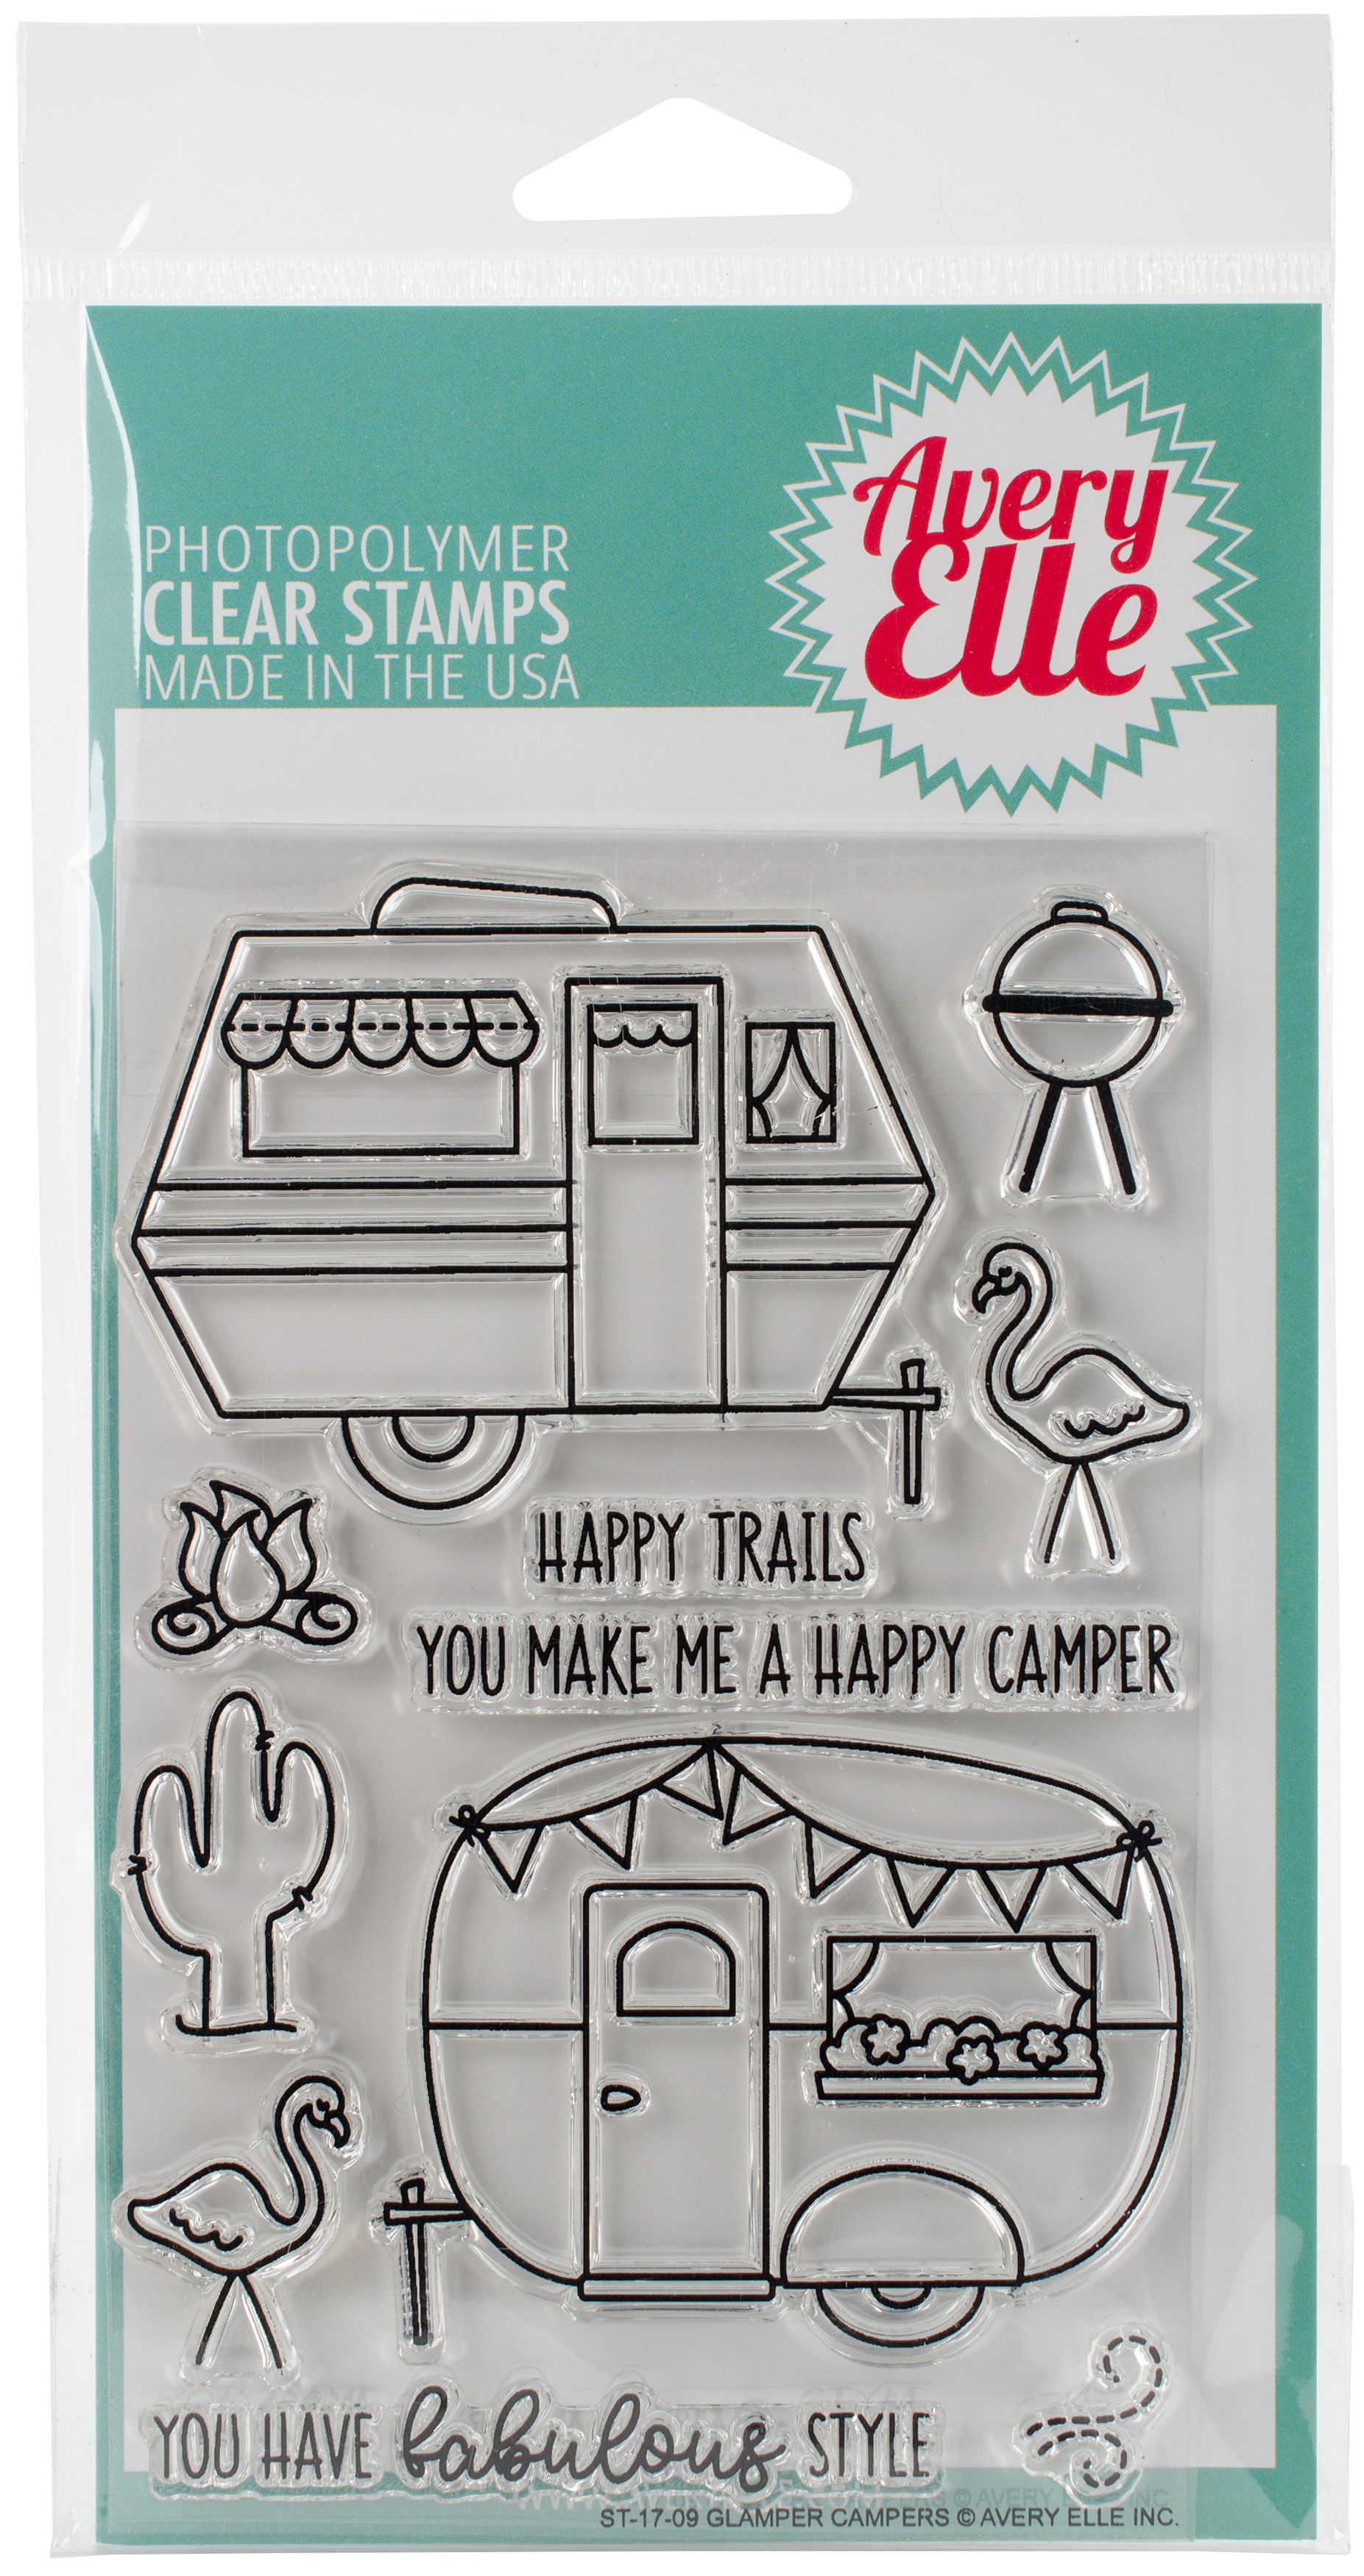 Avery Elle Clear Stamps - Glamper Campers